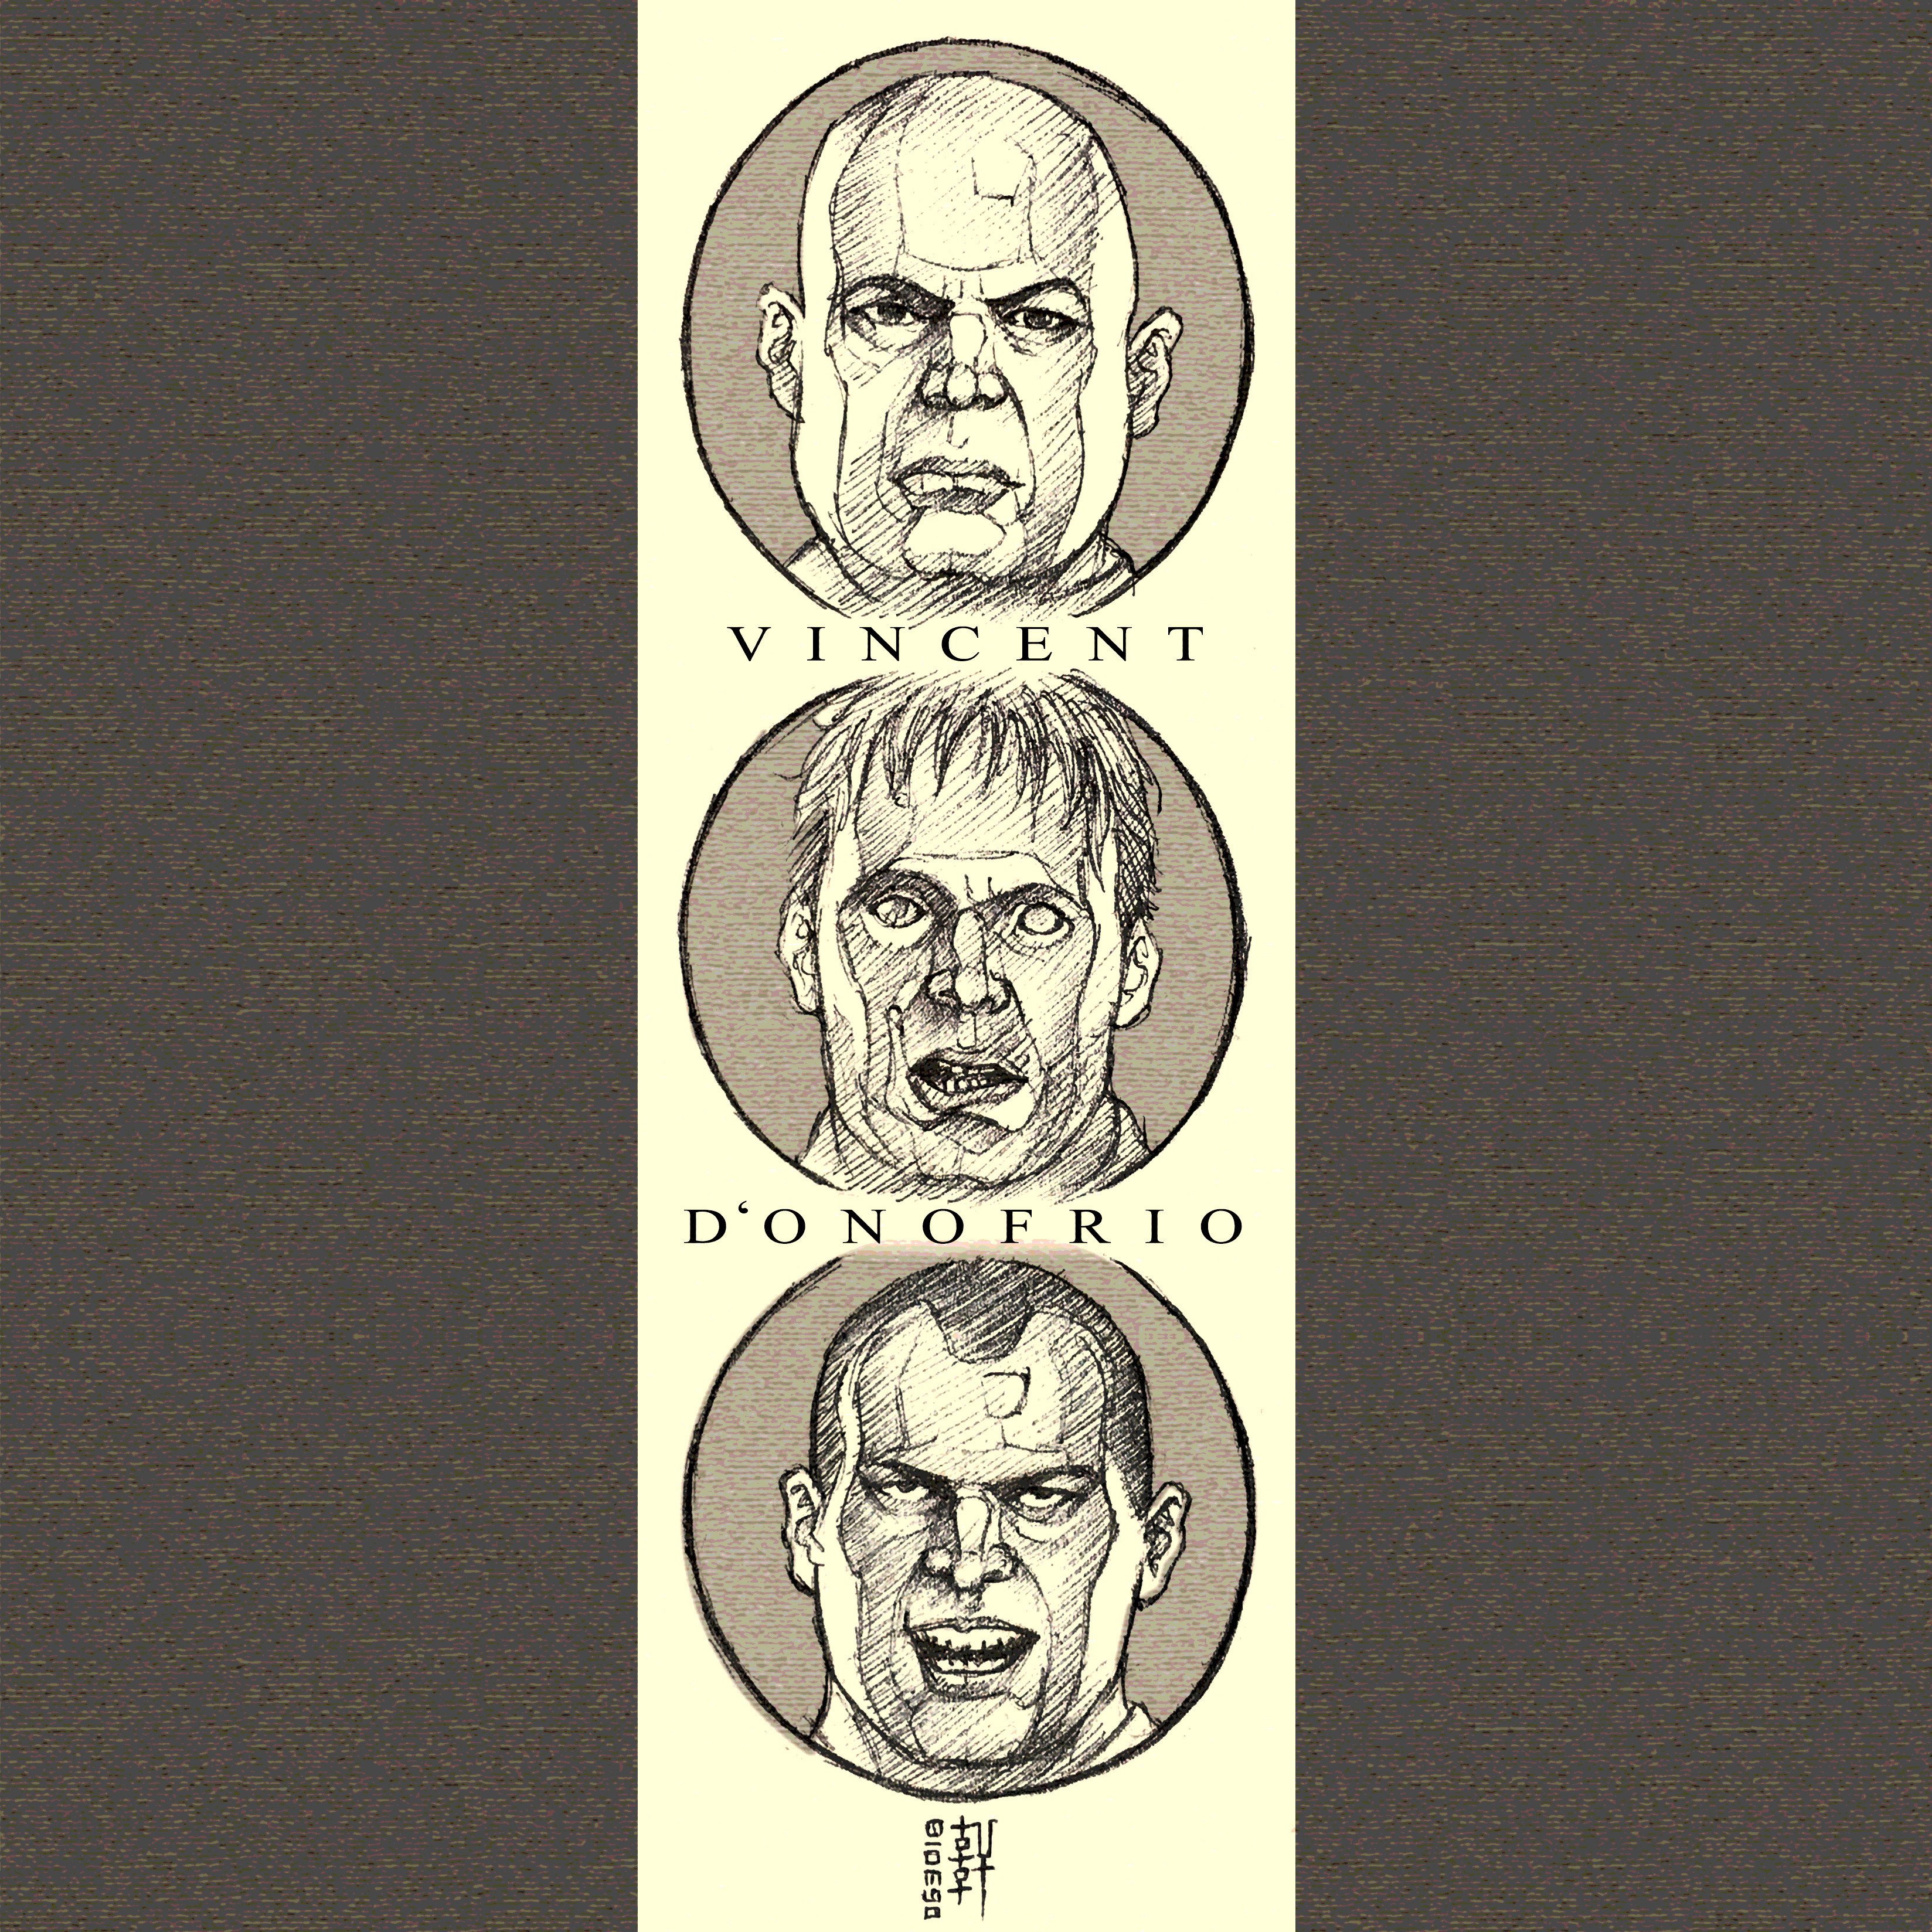 Day 06-30-18 - Vincent D'Onofrio